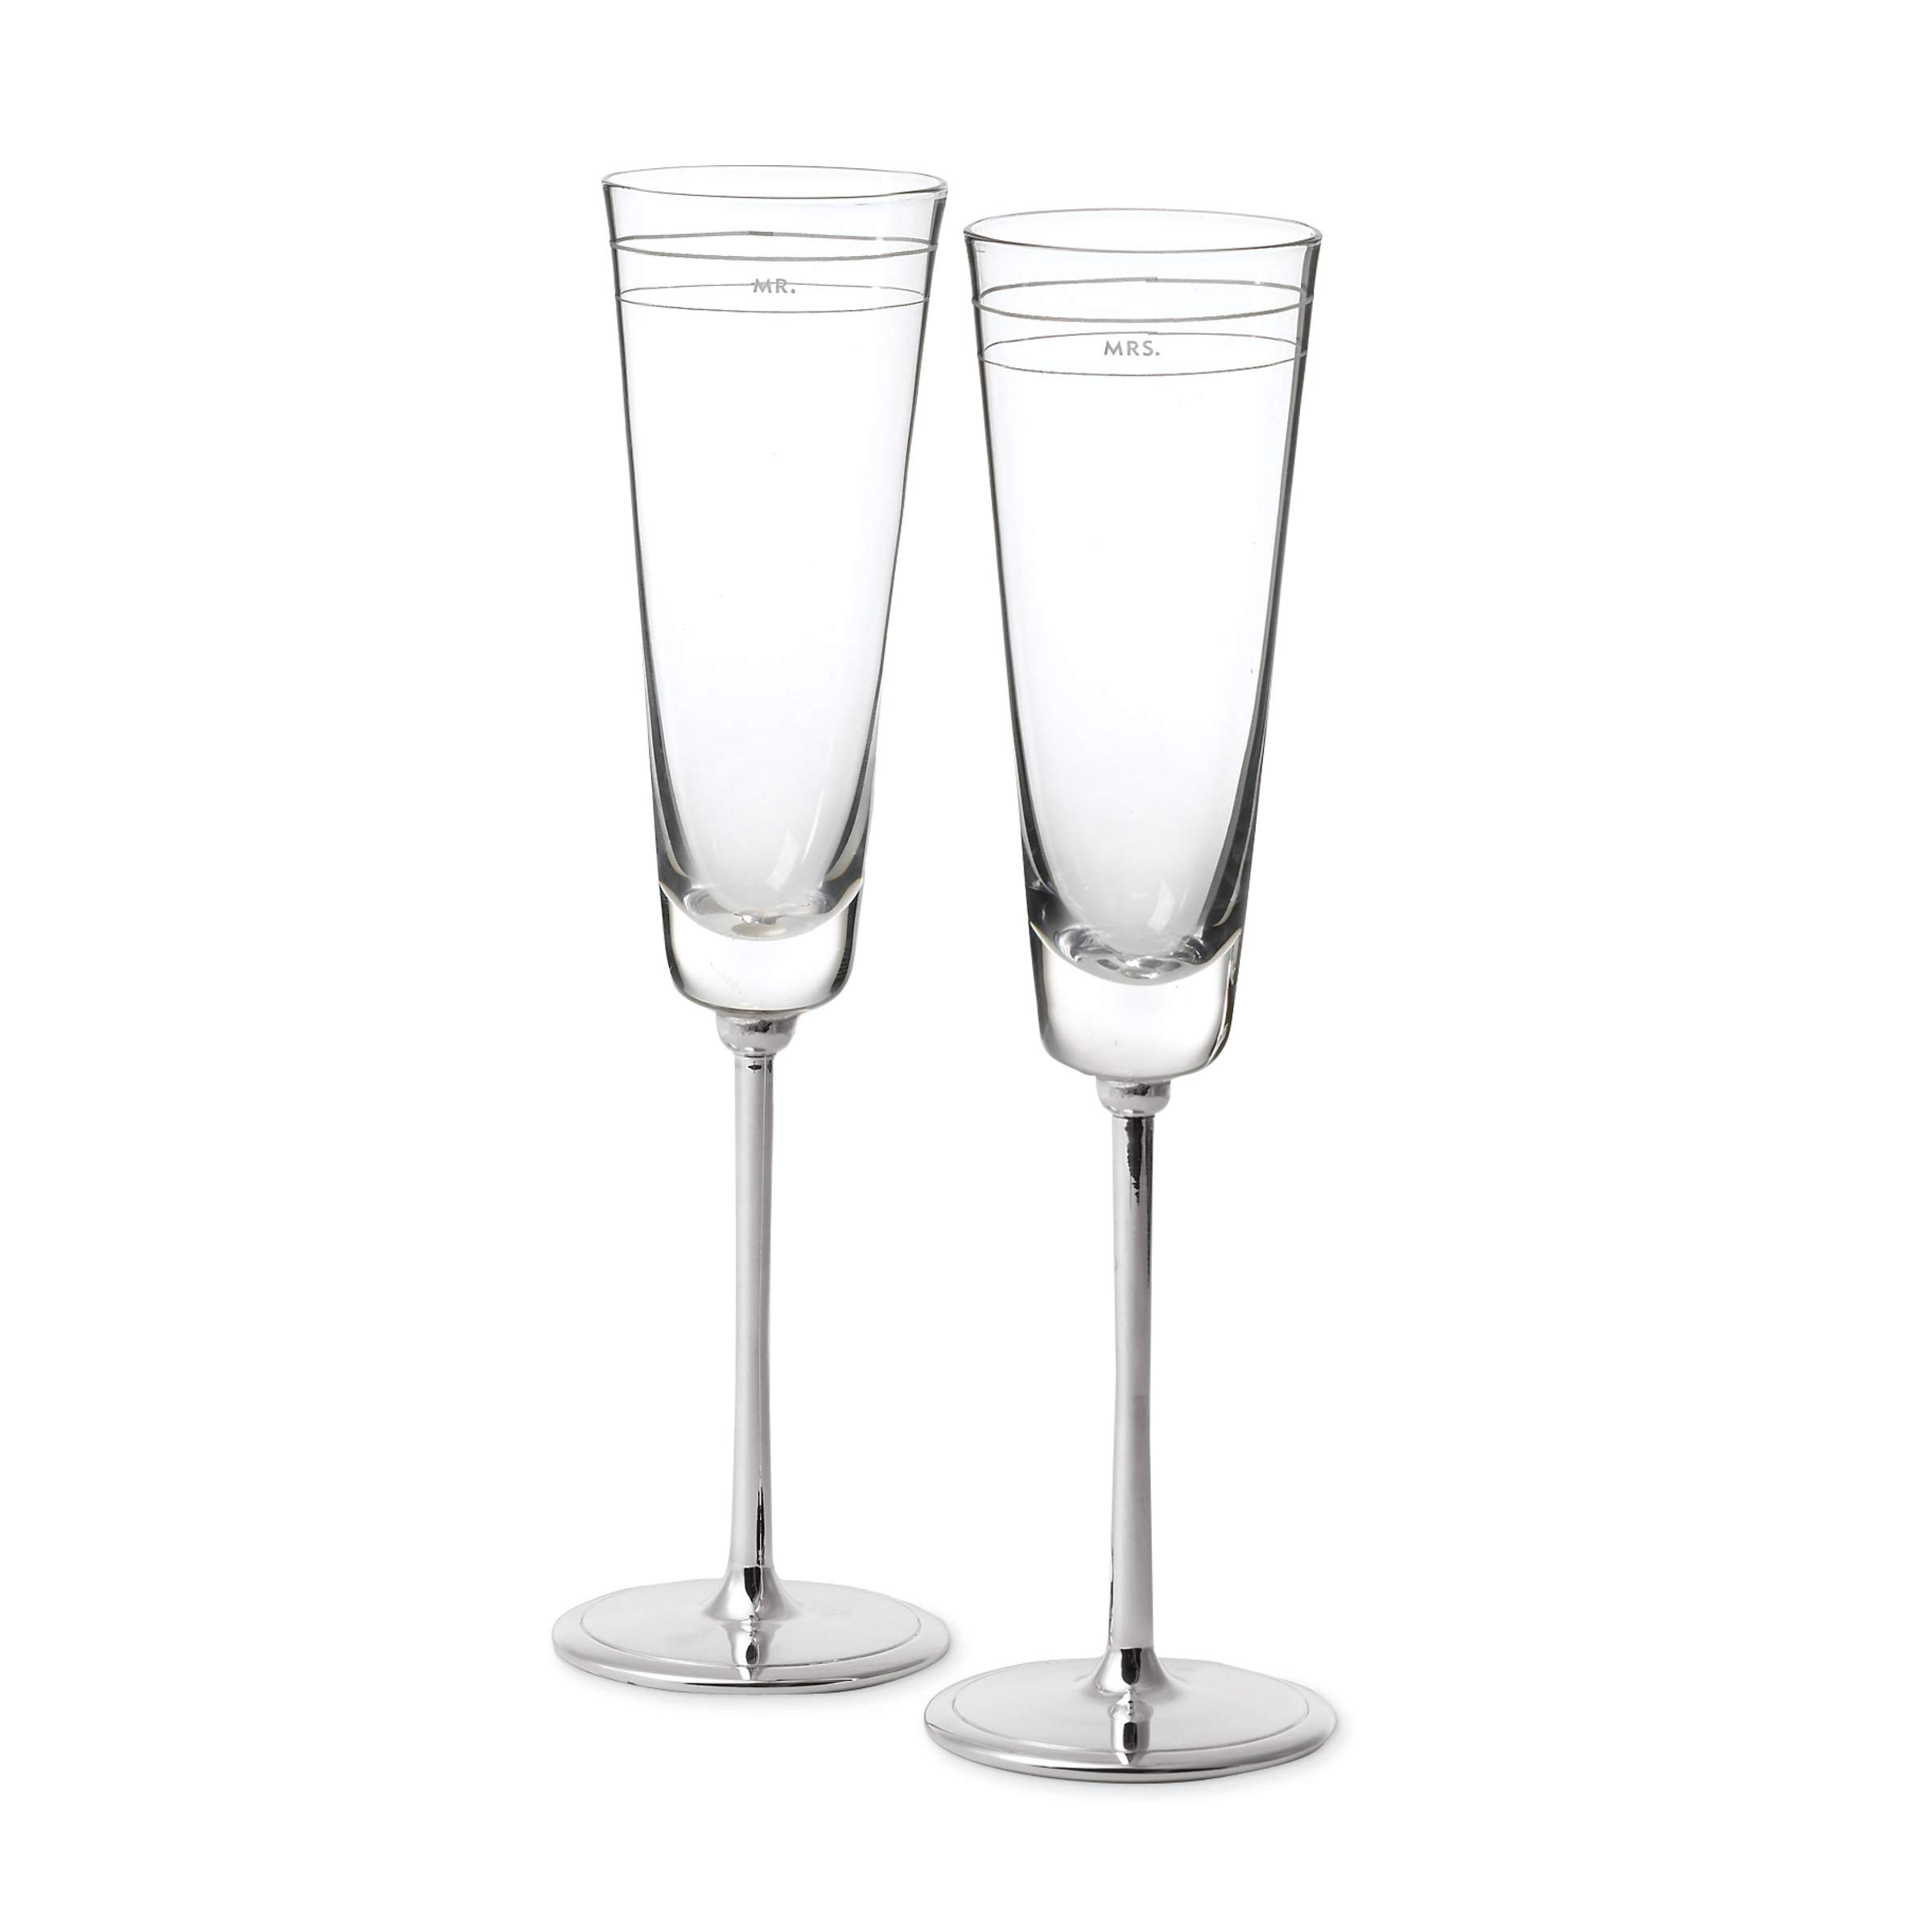 Kate Spade New York 792160 Darling Point champagne glass